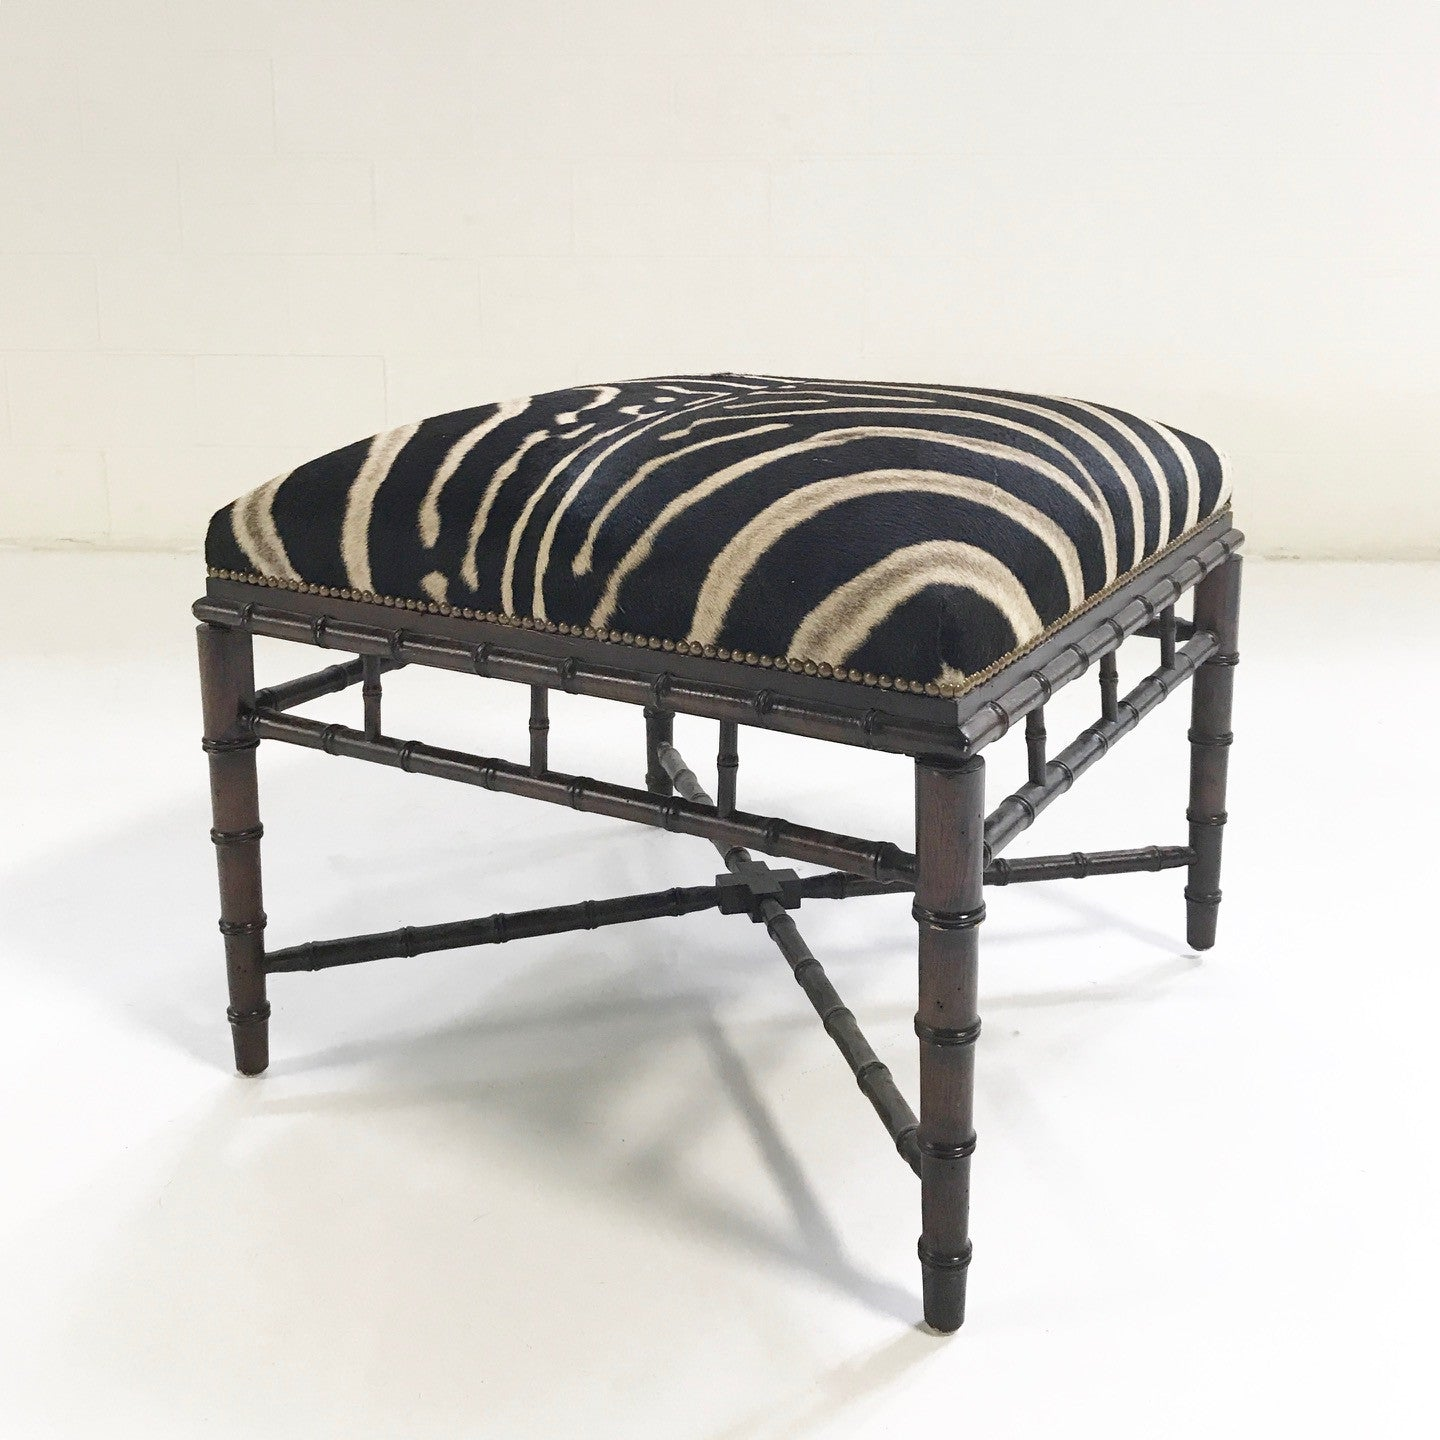 Vintage Chinoiserie Style Ottoman Restored in Zebra Hide - FORSYTH